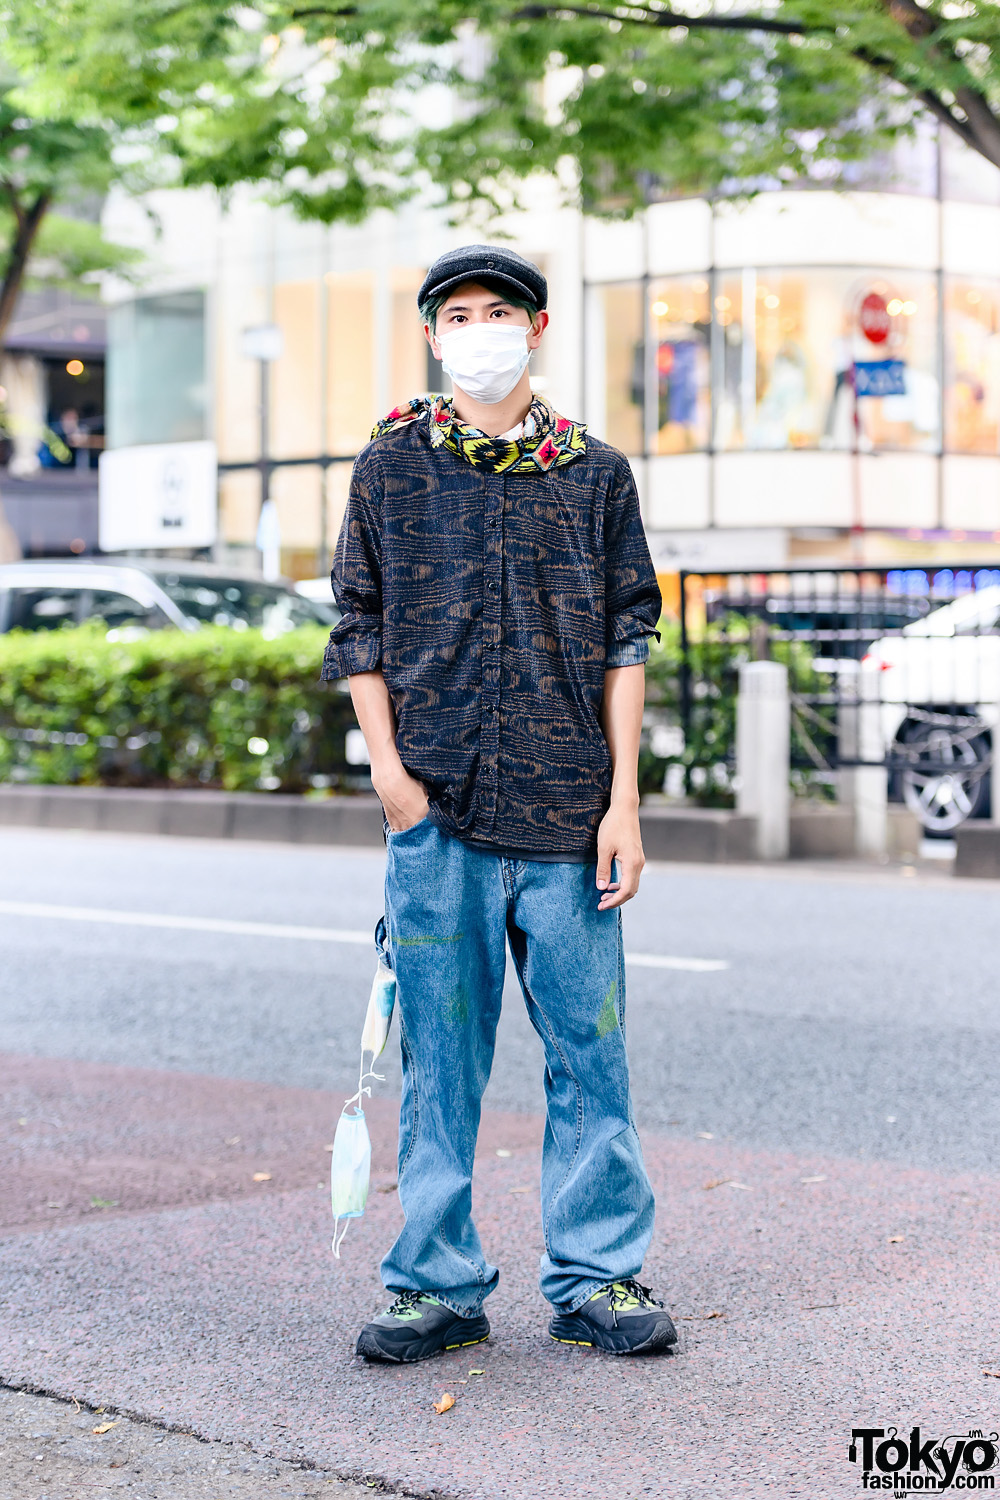 International Student in Baggy Jeans Style w/ Newsboy Hat, Printed Long Sleeves, Printed Scarf, Baggy Blue Jeans, Zara Shoes & Tied-Up Face Masks Accessory